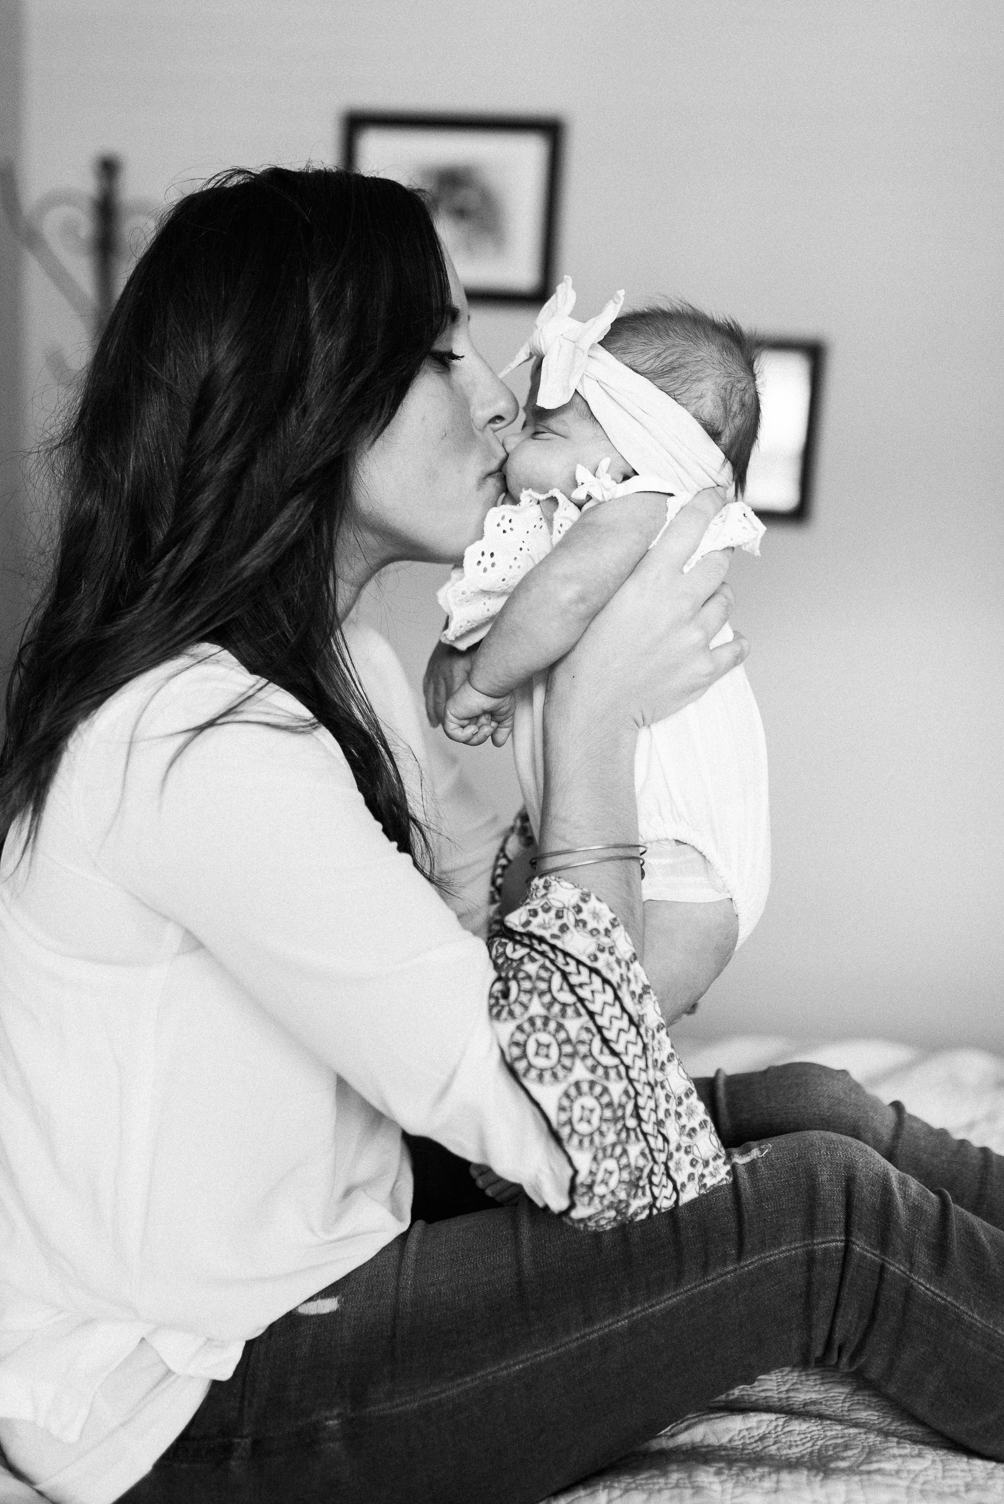 Baltimore-newborn-photographer-BKLP-in home-lifestyle-maryland-twins-photos by-Breanna Kuhlmann-12.jpg